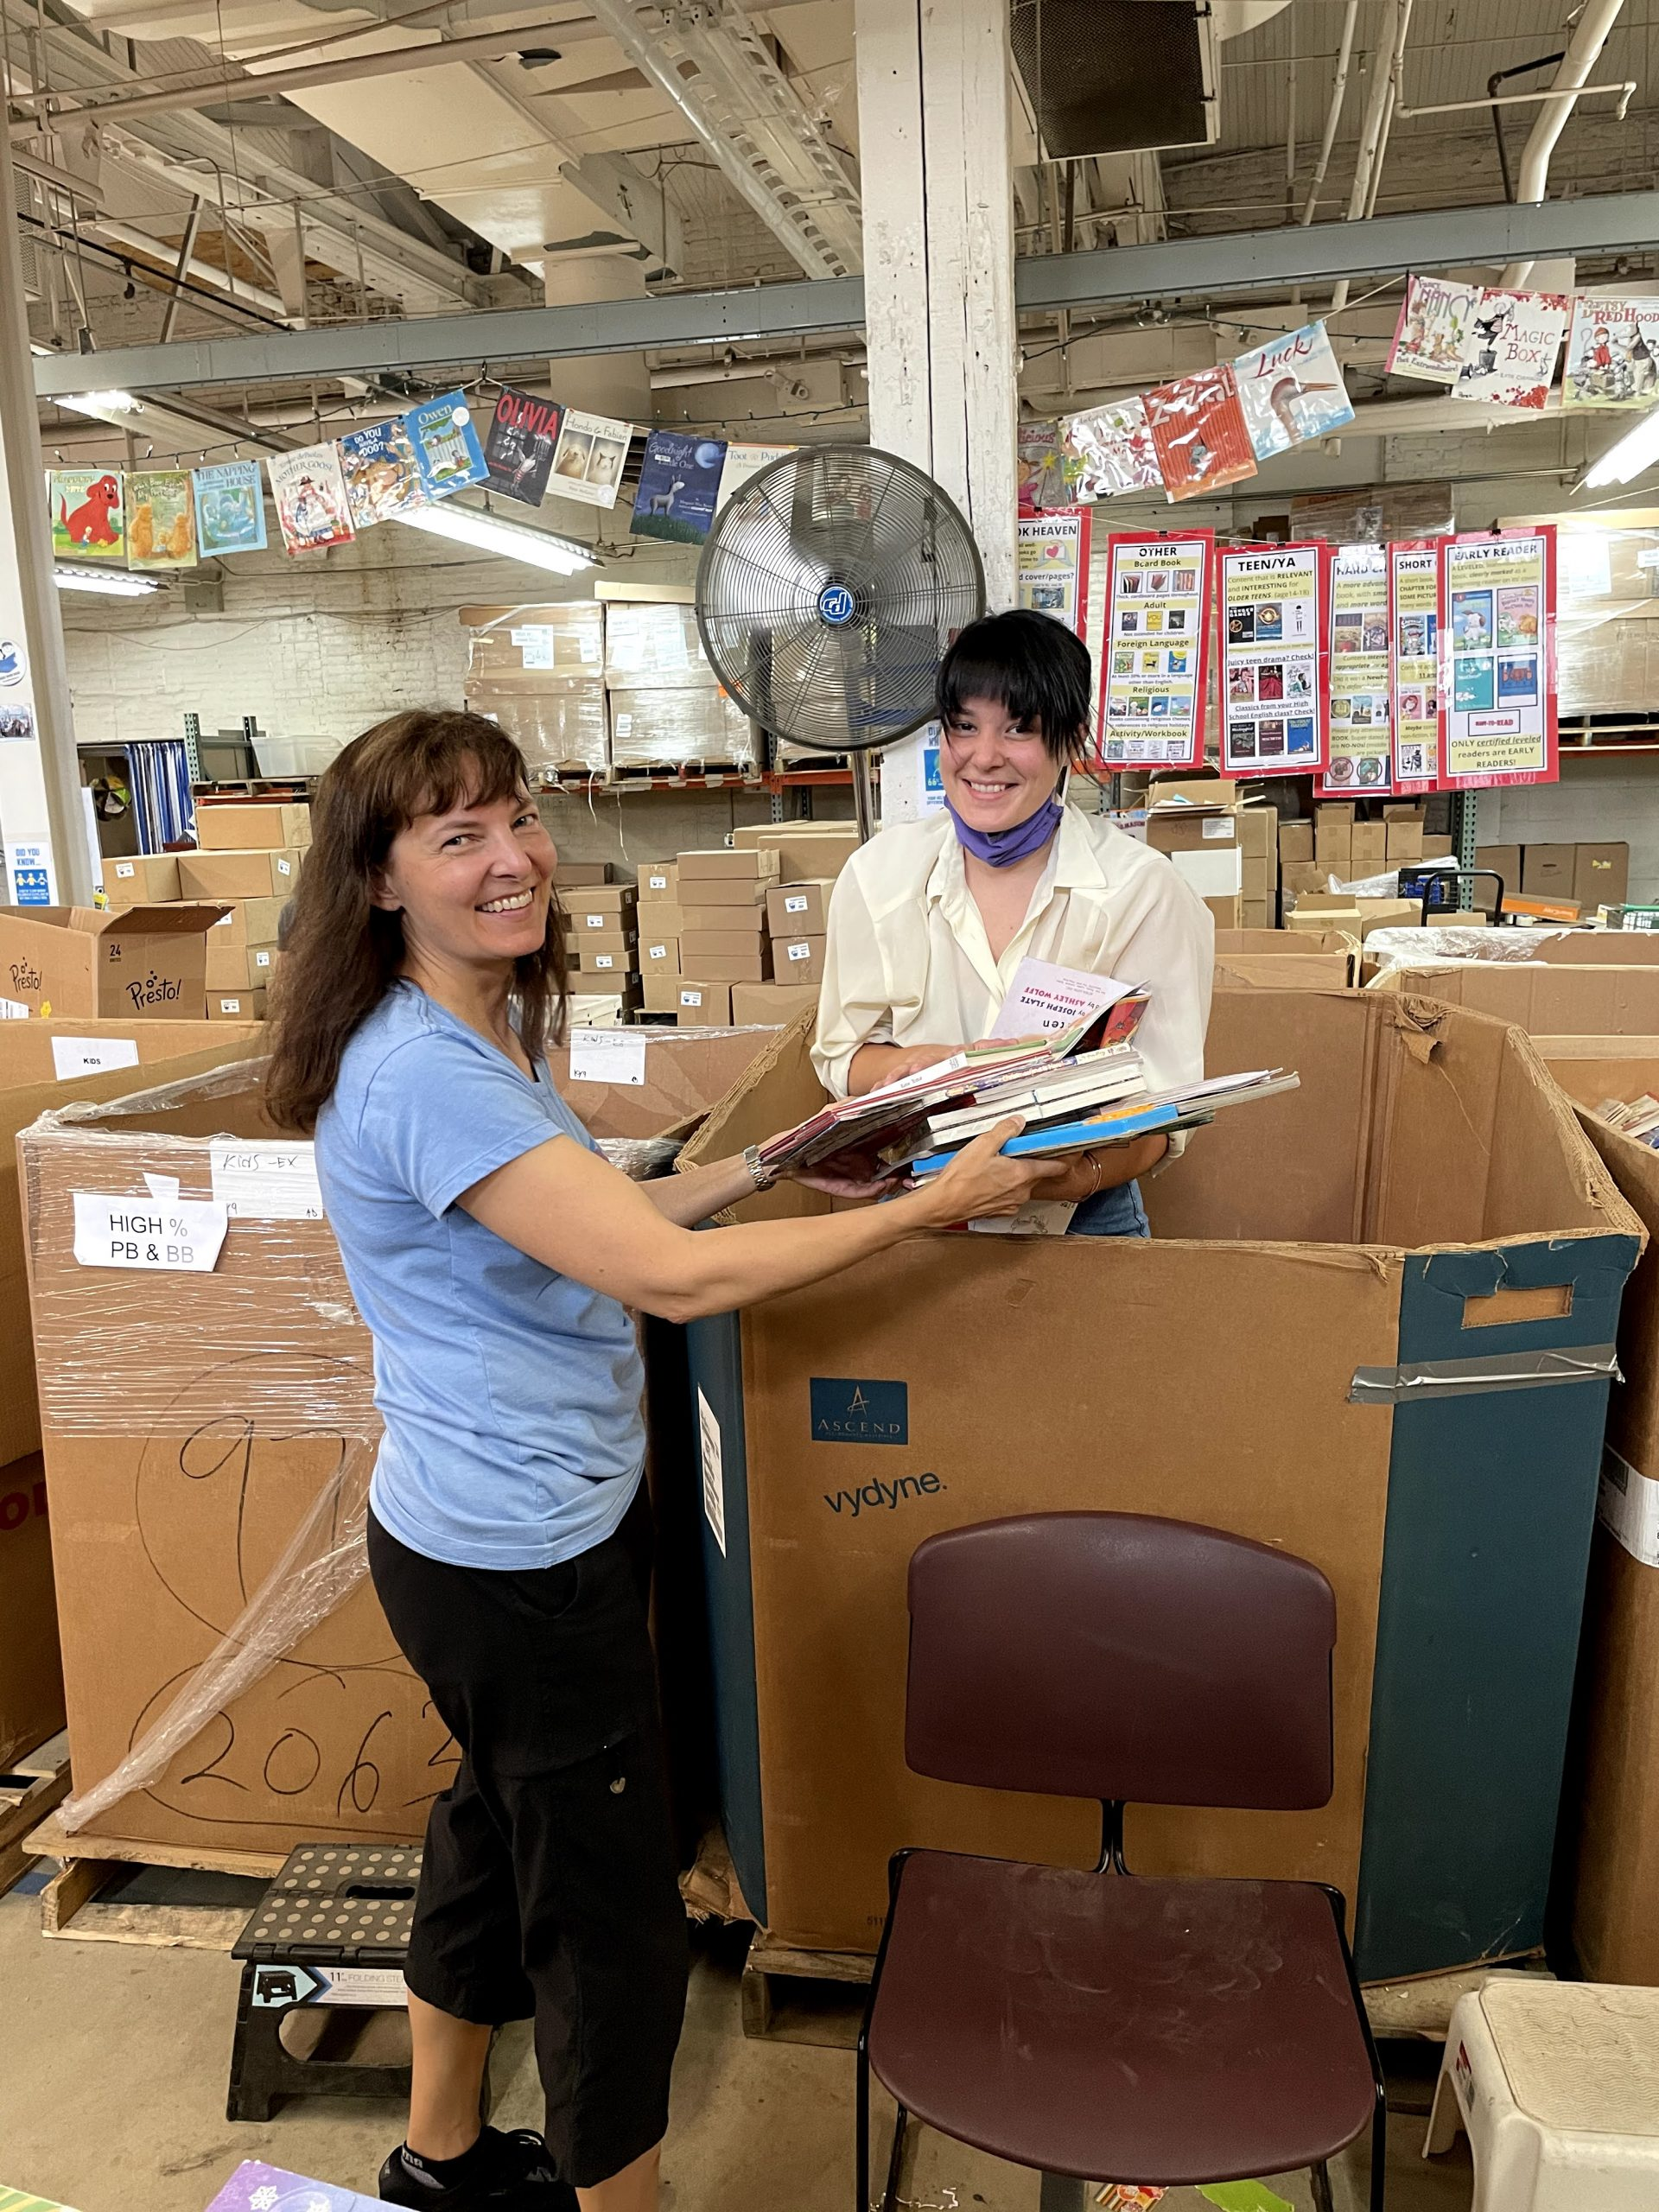 Two volunteers sort books from a gaylord in the Cleveland Kids' Book Bank warehouse